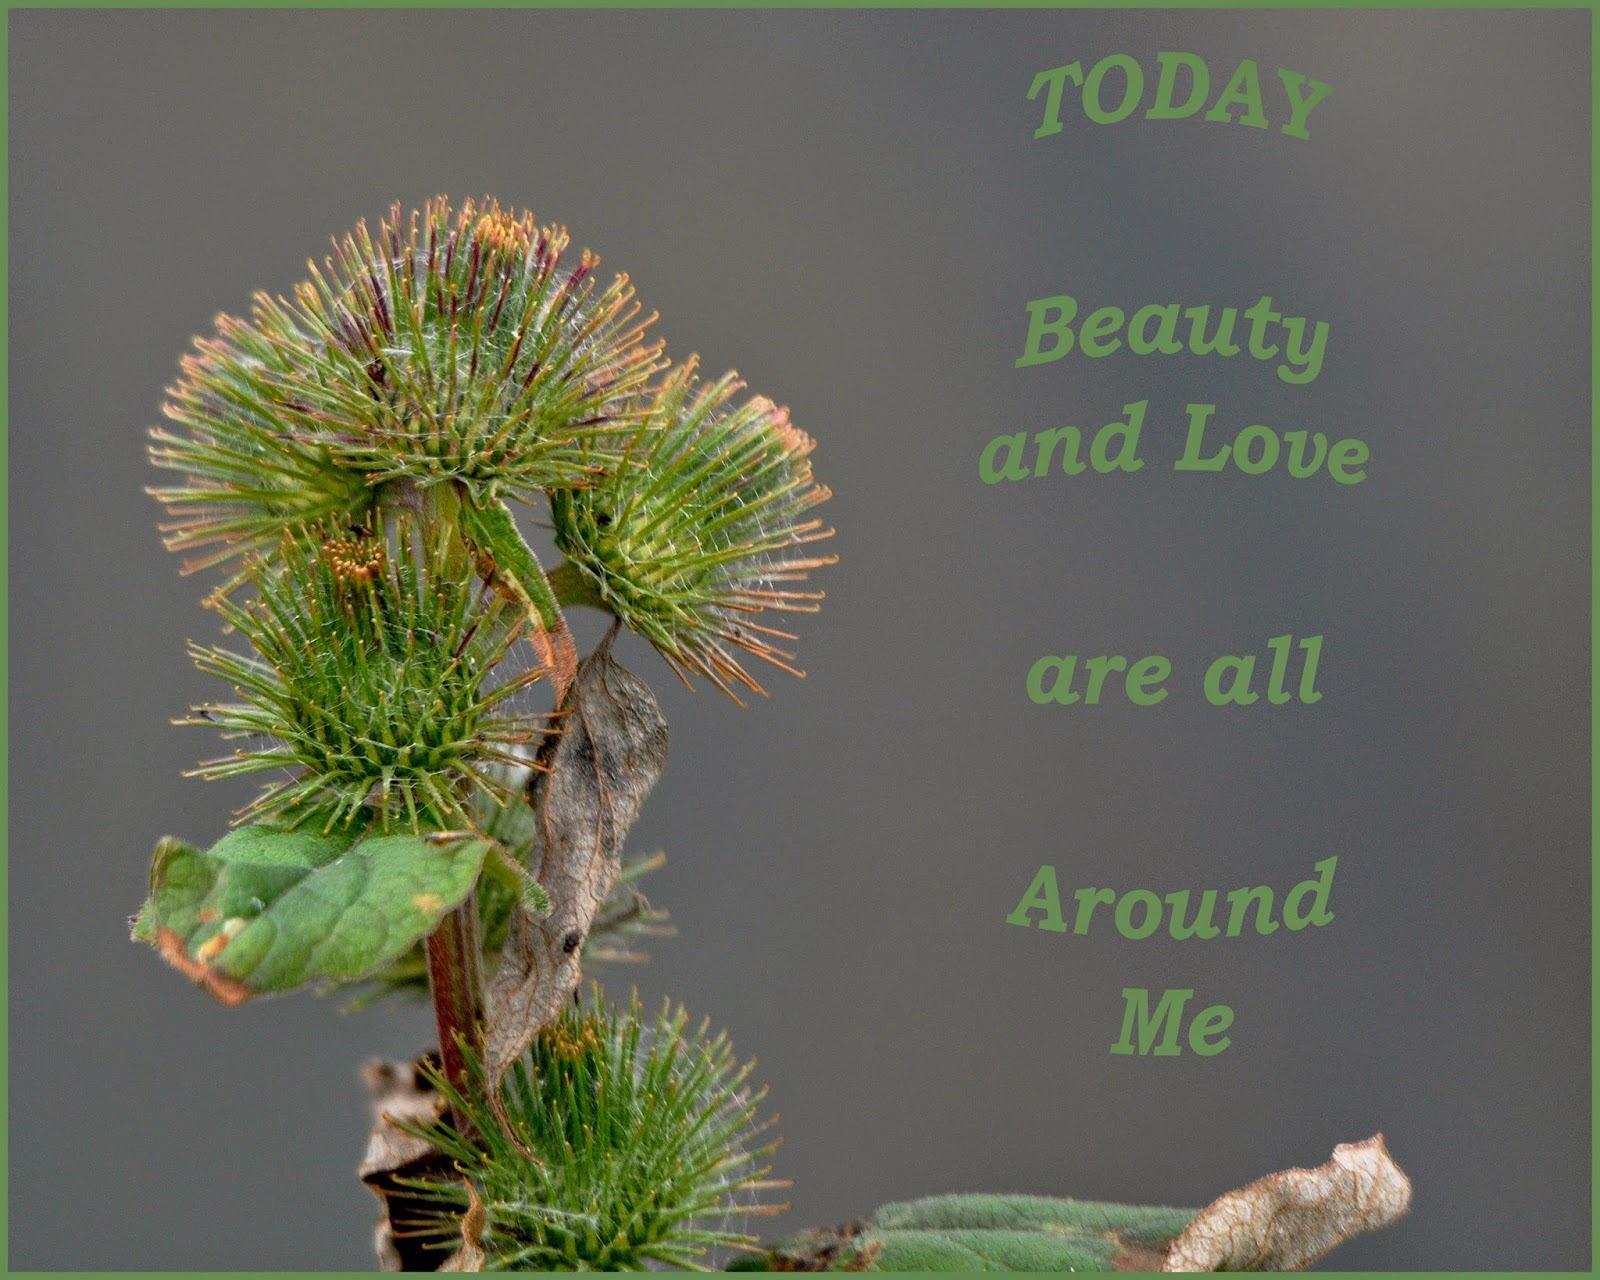 affirmation card on beauty and love